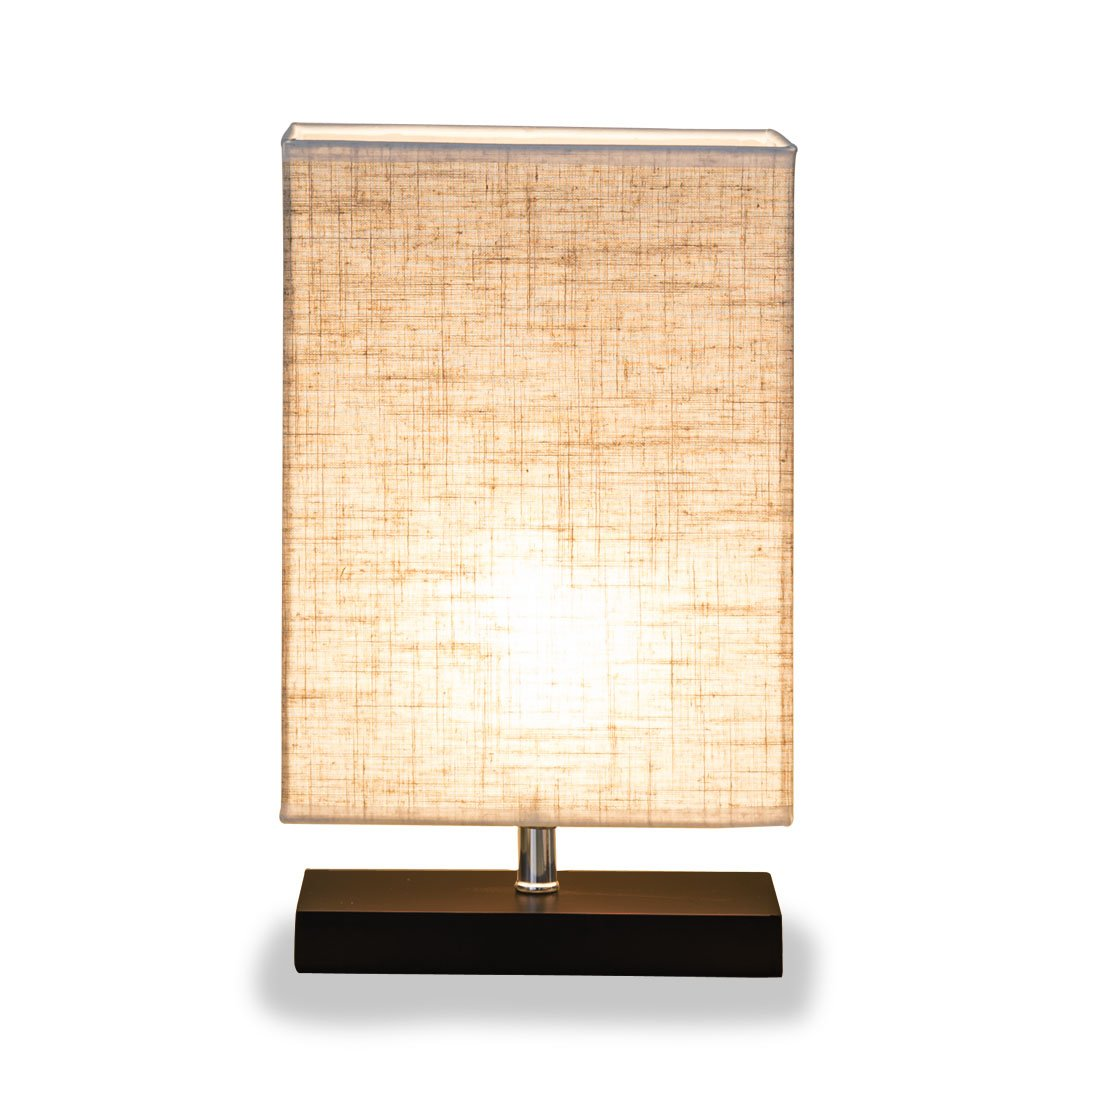 Zeefo wood table lamp retro solid wood and fabric shade relax lighting for bedroom bedside desk lamp contemporary living room